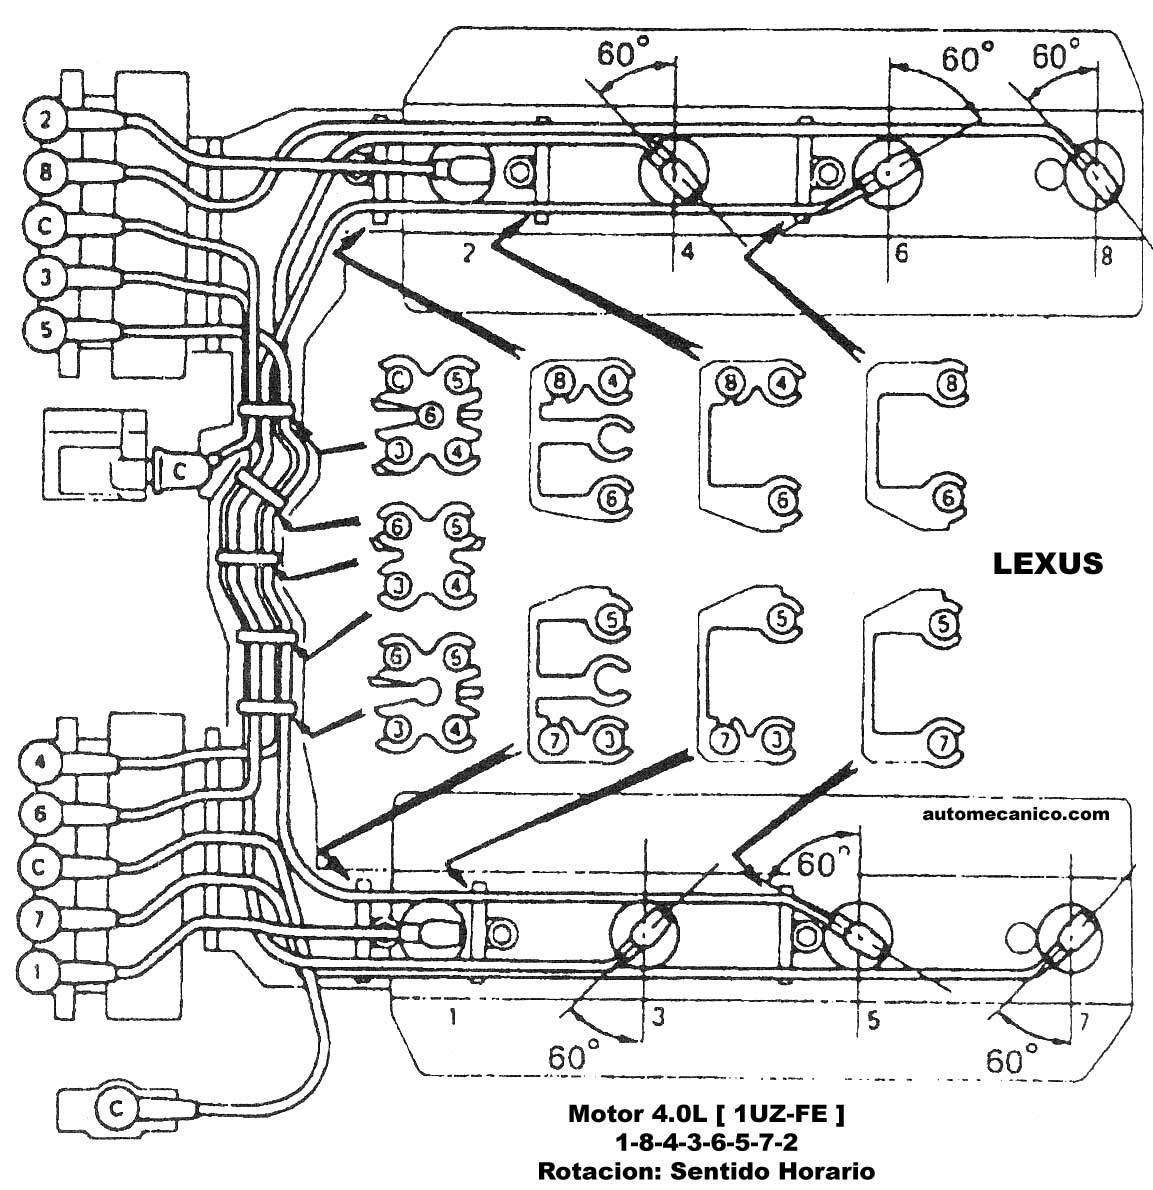 Mitsubishi Precis Engine Diagram Wiring Diagrams 1997 Eclipse Mercedes Diesel Motor 3d 2007